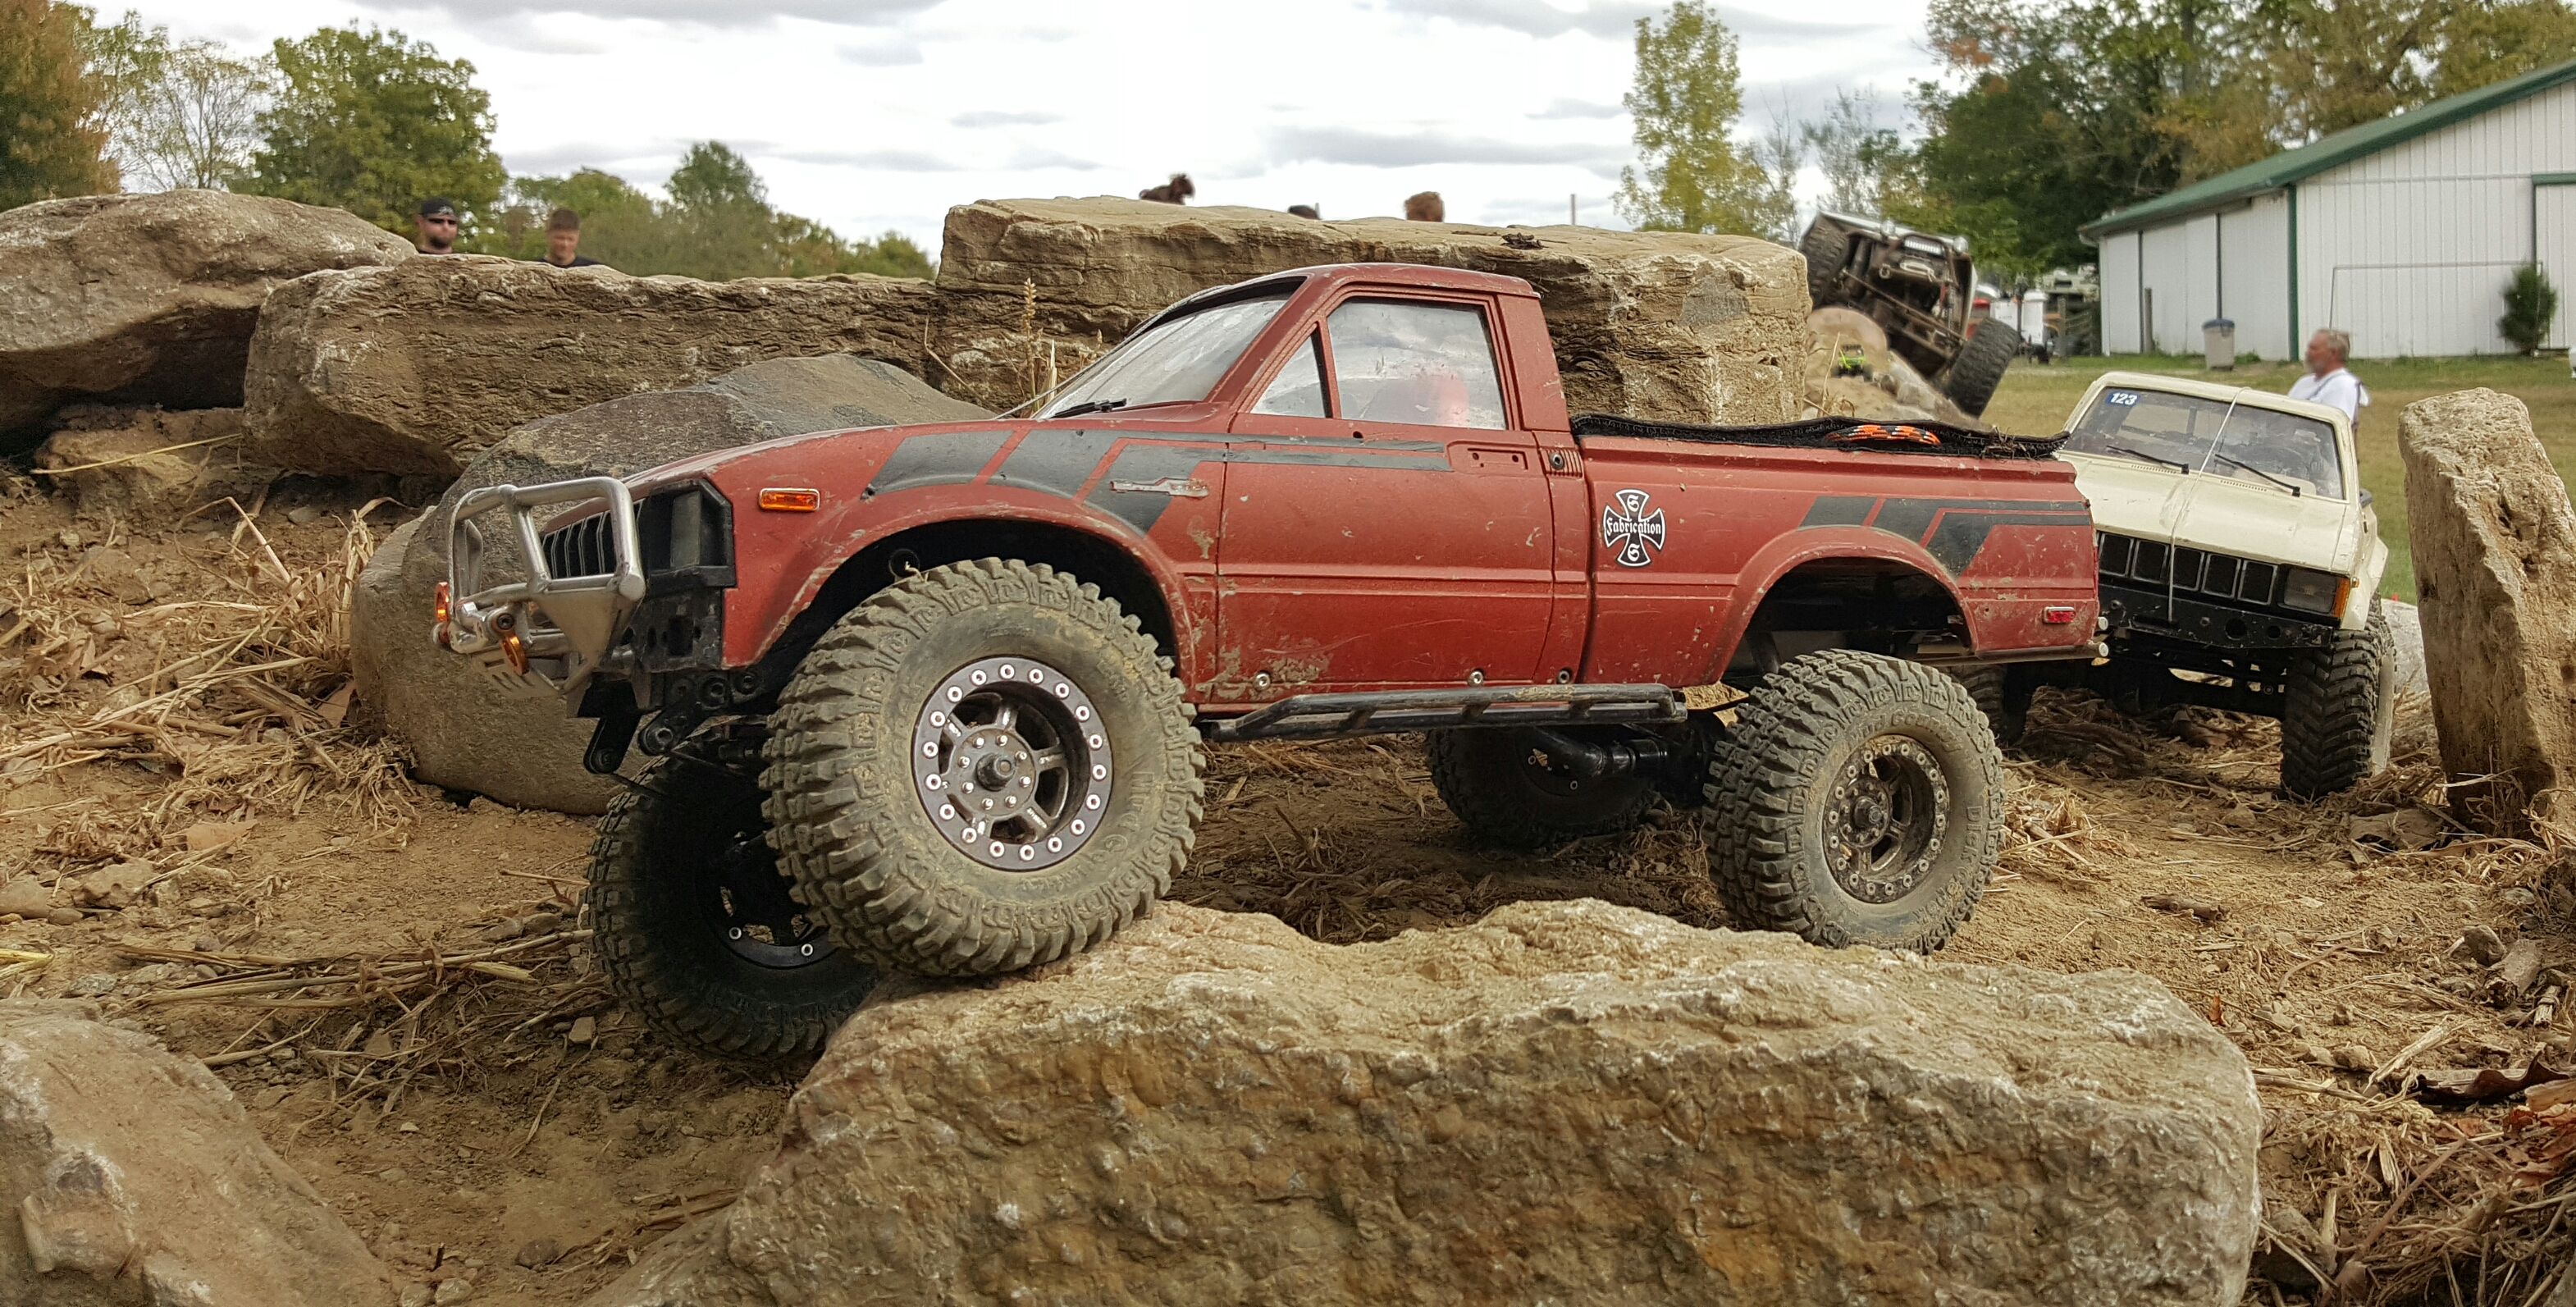 good rc car with Rc4wd Trail Finder 2 Toyota Hilux By Brian Pratt Readers Ride on Hpi F1 Rc Cars additionally  in addition T626 Plans For Rc Models To Cox Engines as well Annies Playground Fallstonmd in addition 2015.